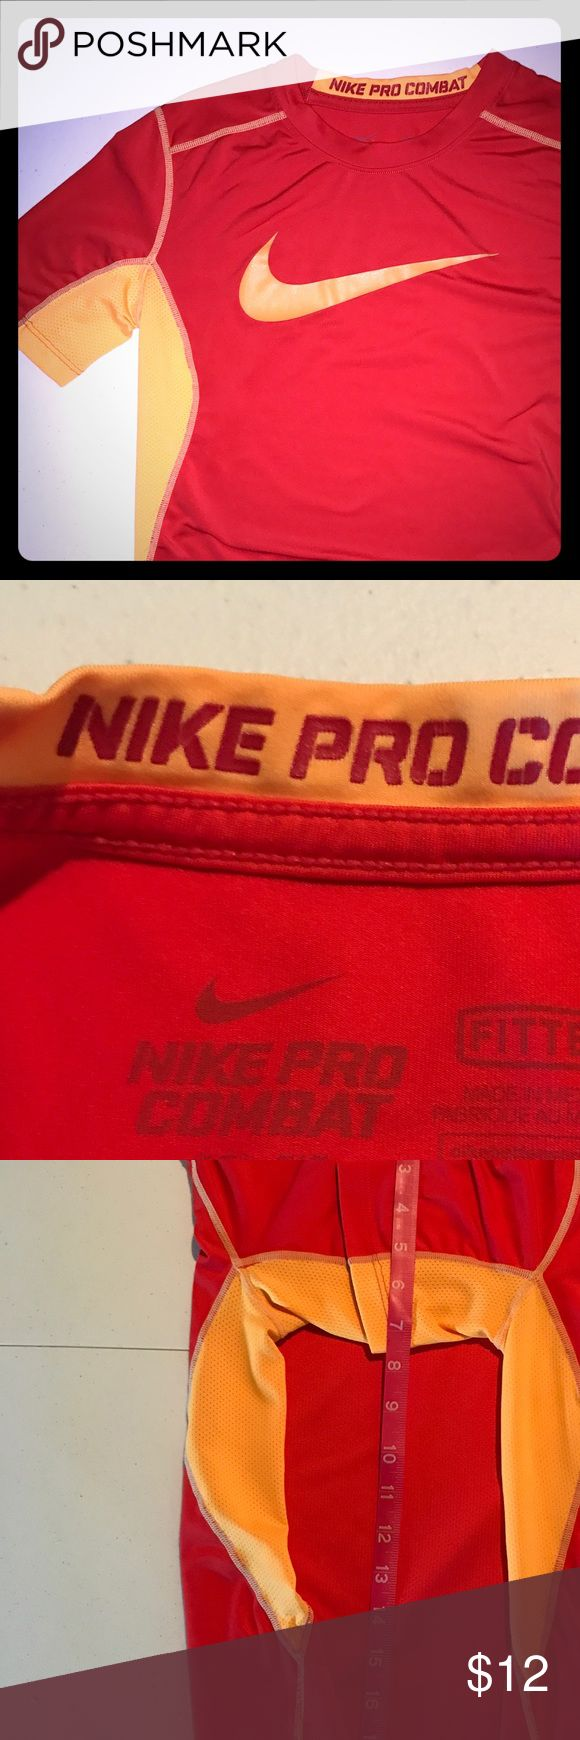 ✔️Nike Pro Combat Boys Medium  Dri-Fit✔️ Lightly worn boys EUC  Pro Combat Dri-Fit Nike worn only 5-6x. Son was not a fan of the color so it didn't get overworn. No signs of wear or stains!! Nike Shirts & Tops Tees - Short Sleeve